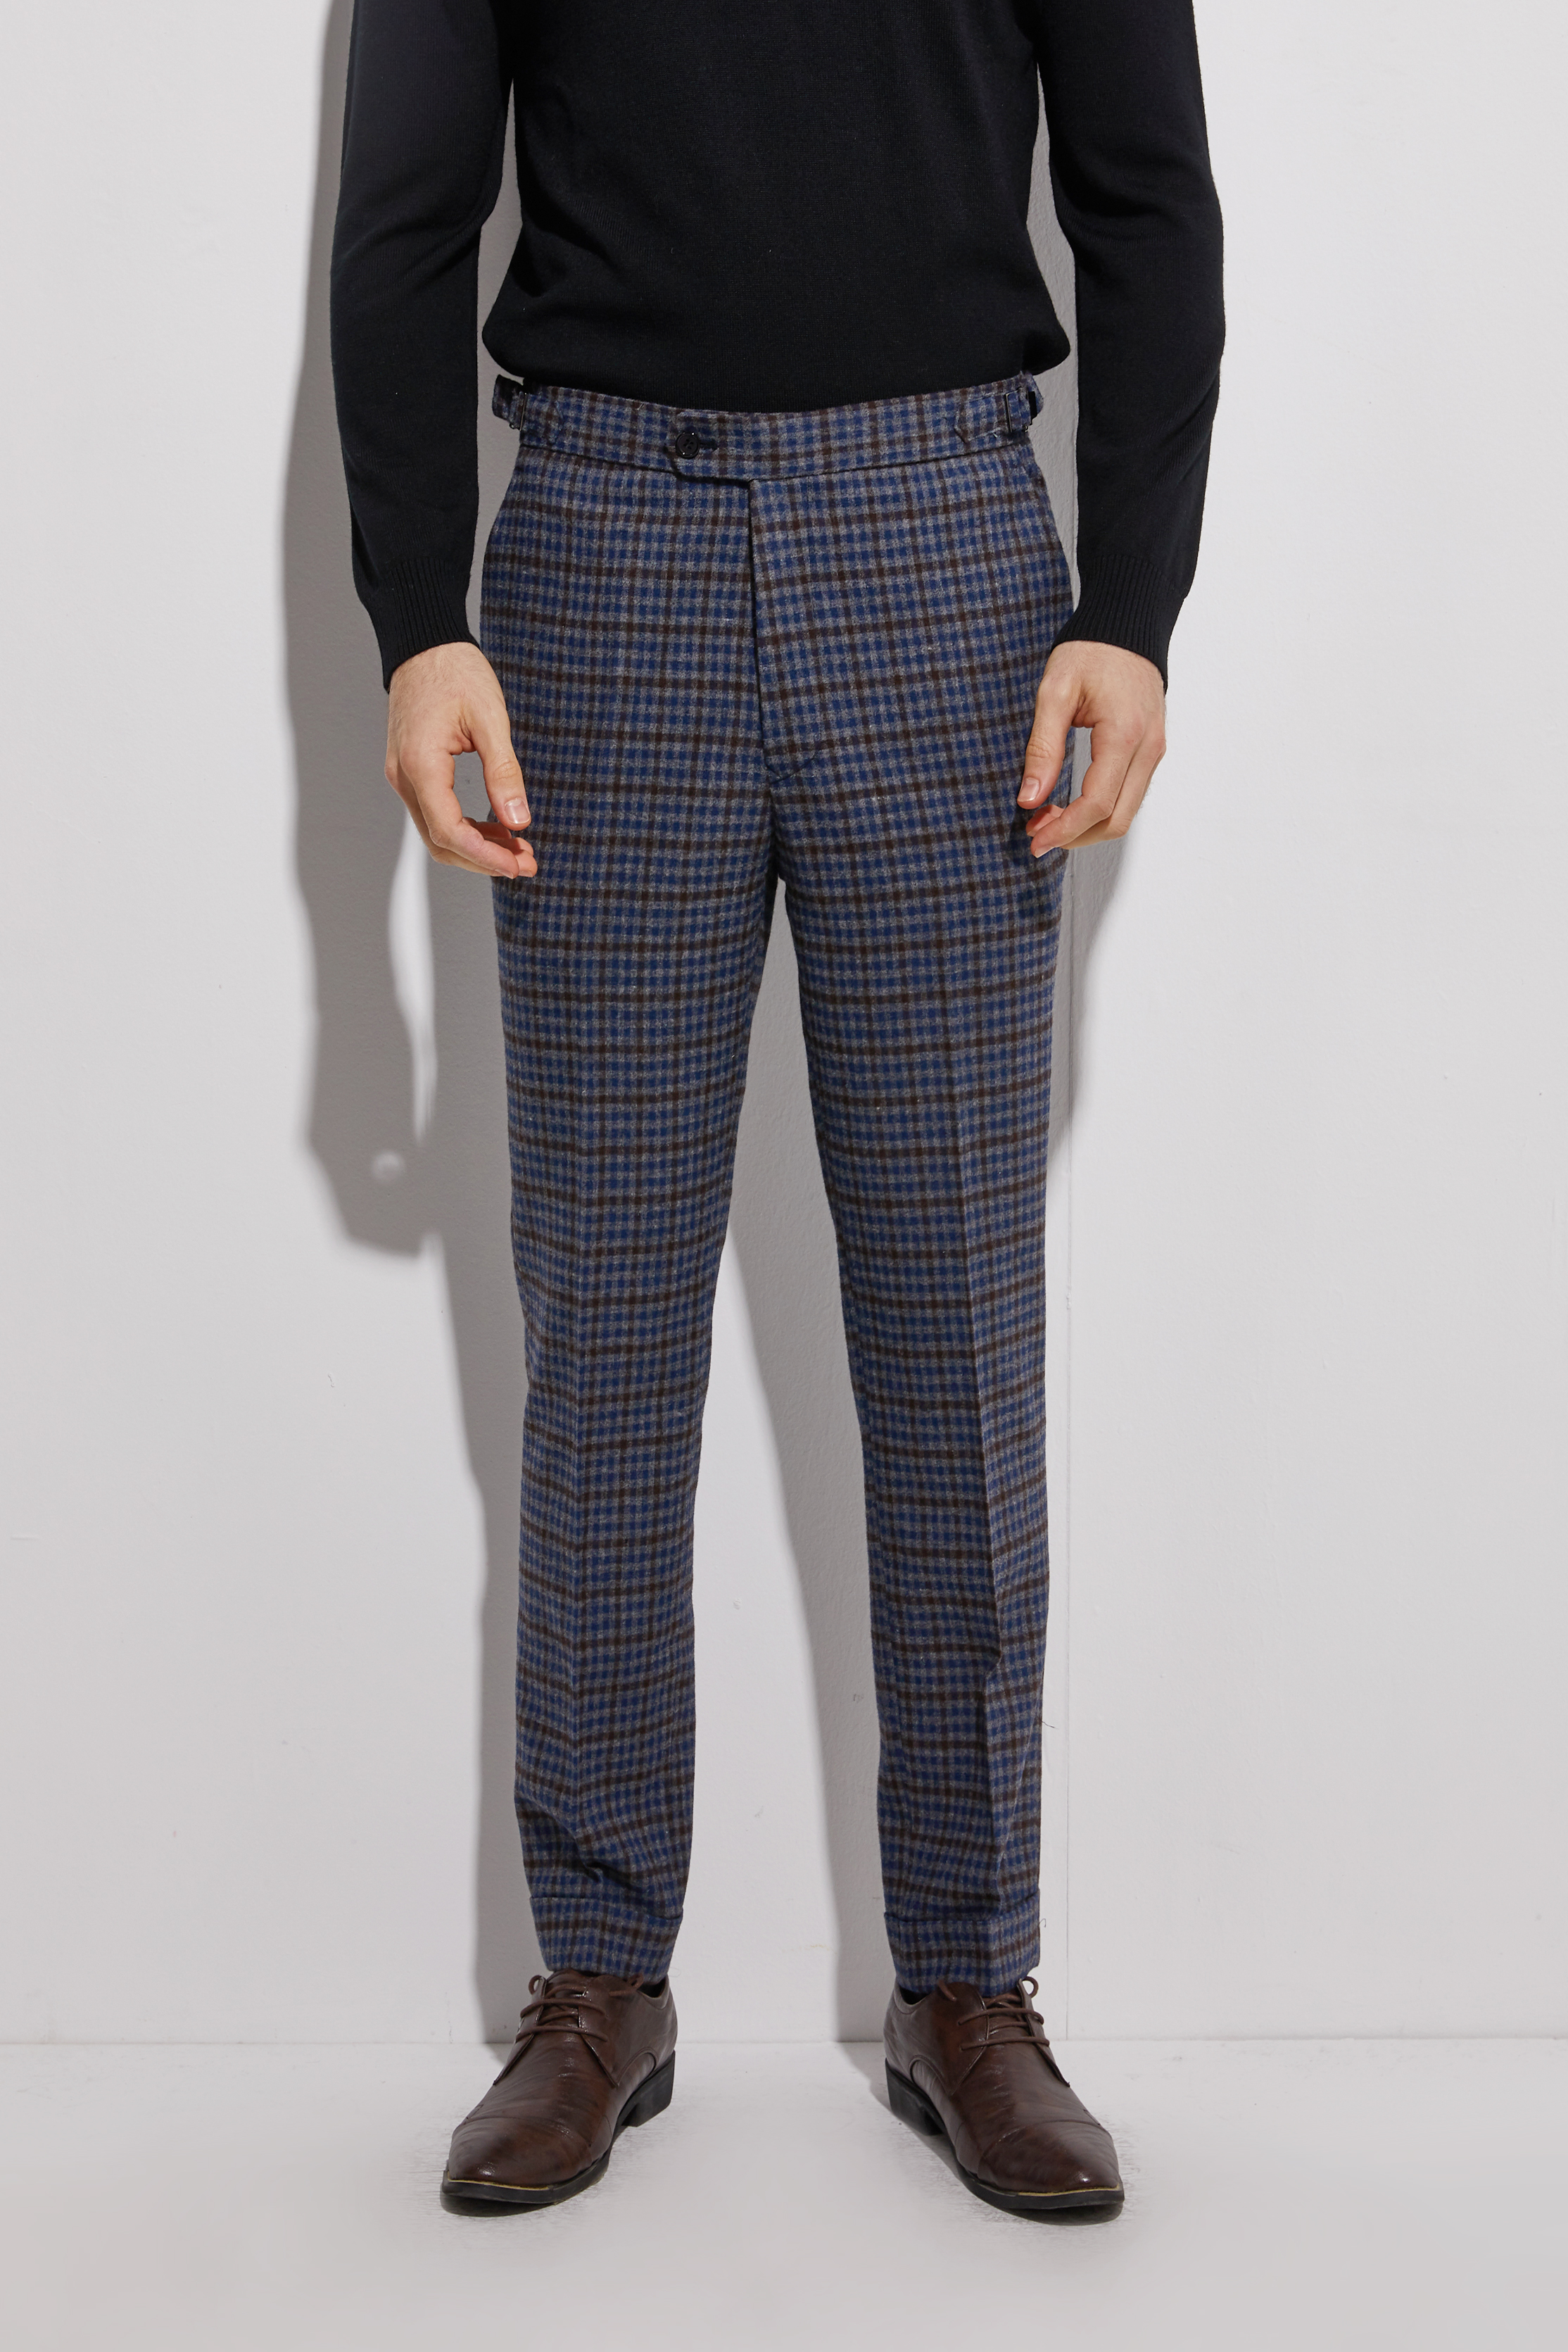 2020 Flannel Pants With Cuff Dark Blue Plaid Men Slim Fit Business Pants Custom Made Flannel Trousers With Side Adjusters